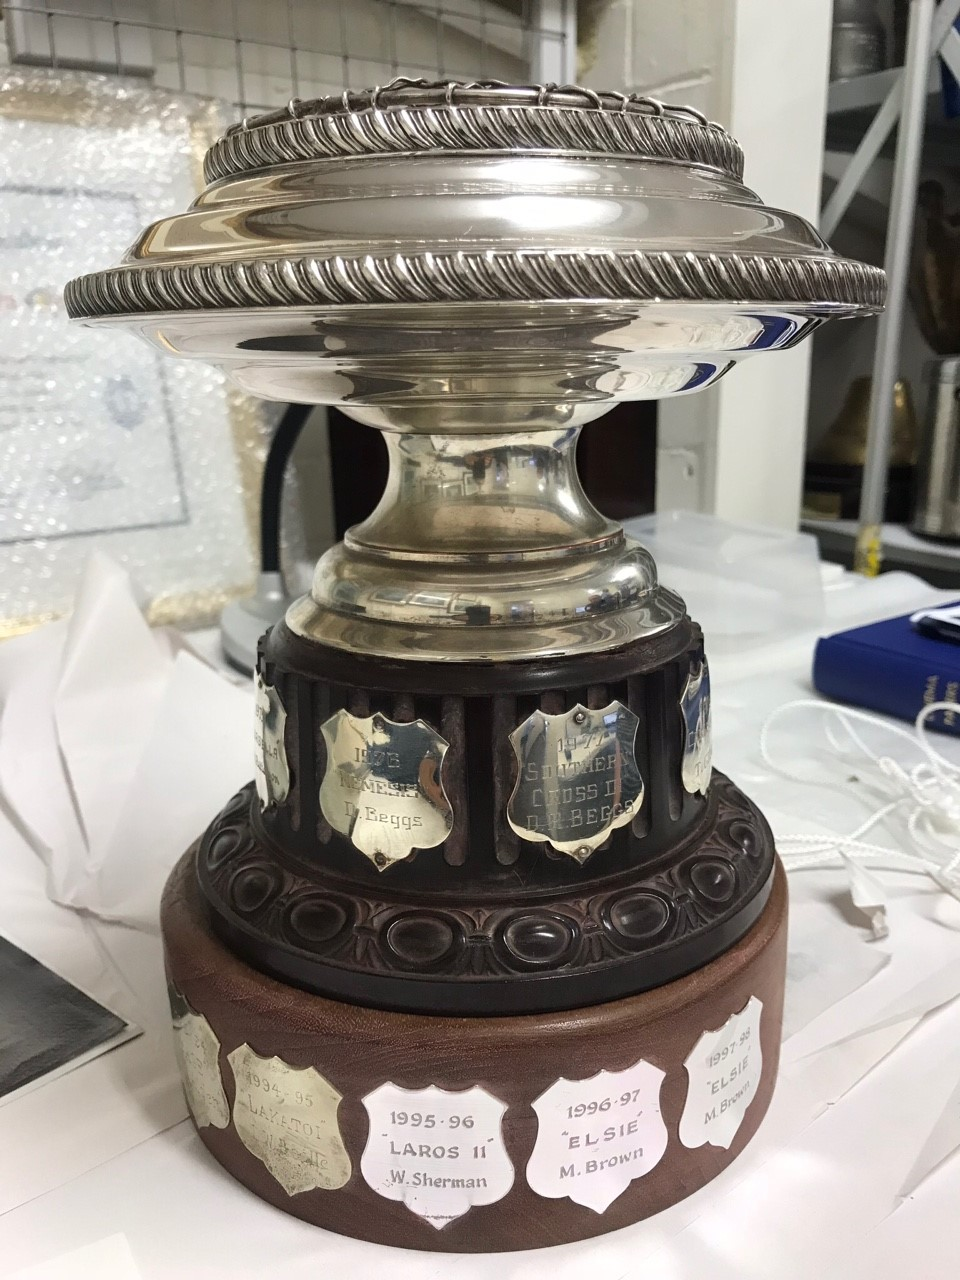 The Fred Craig Juno Trophy.